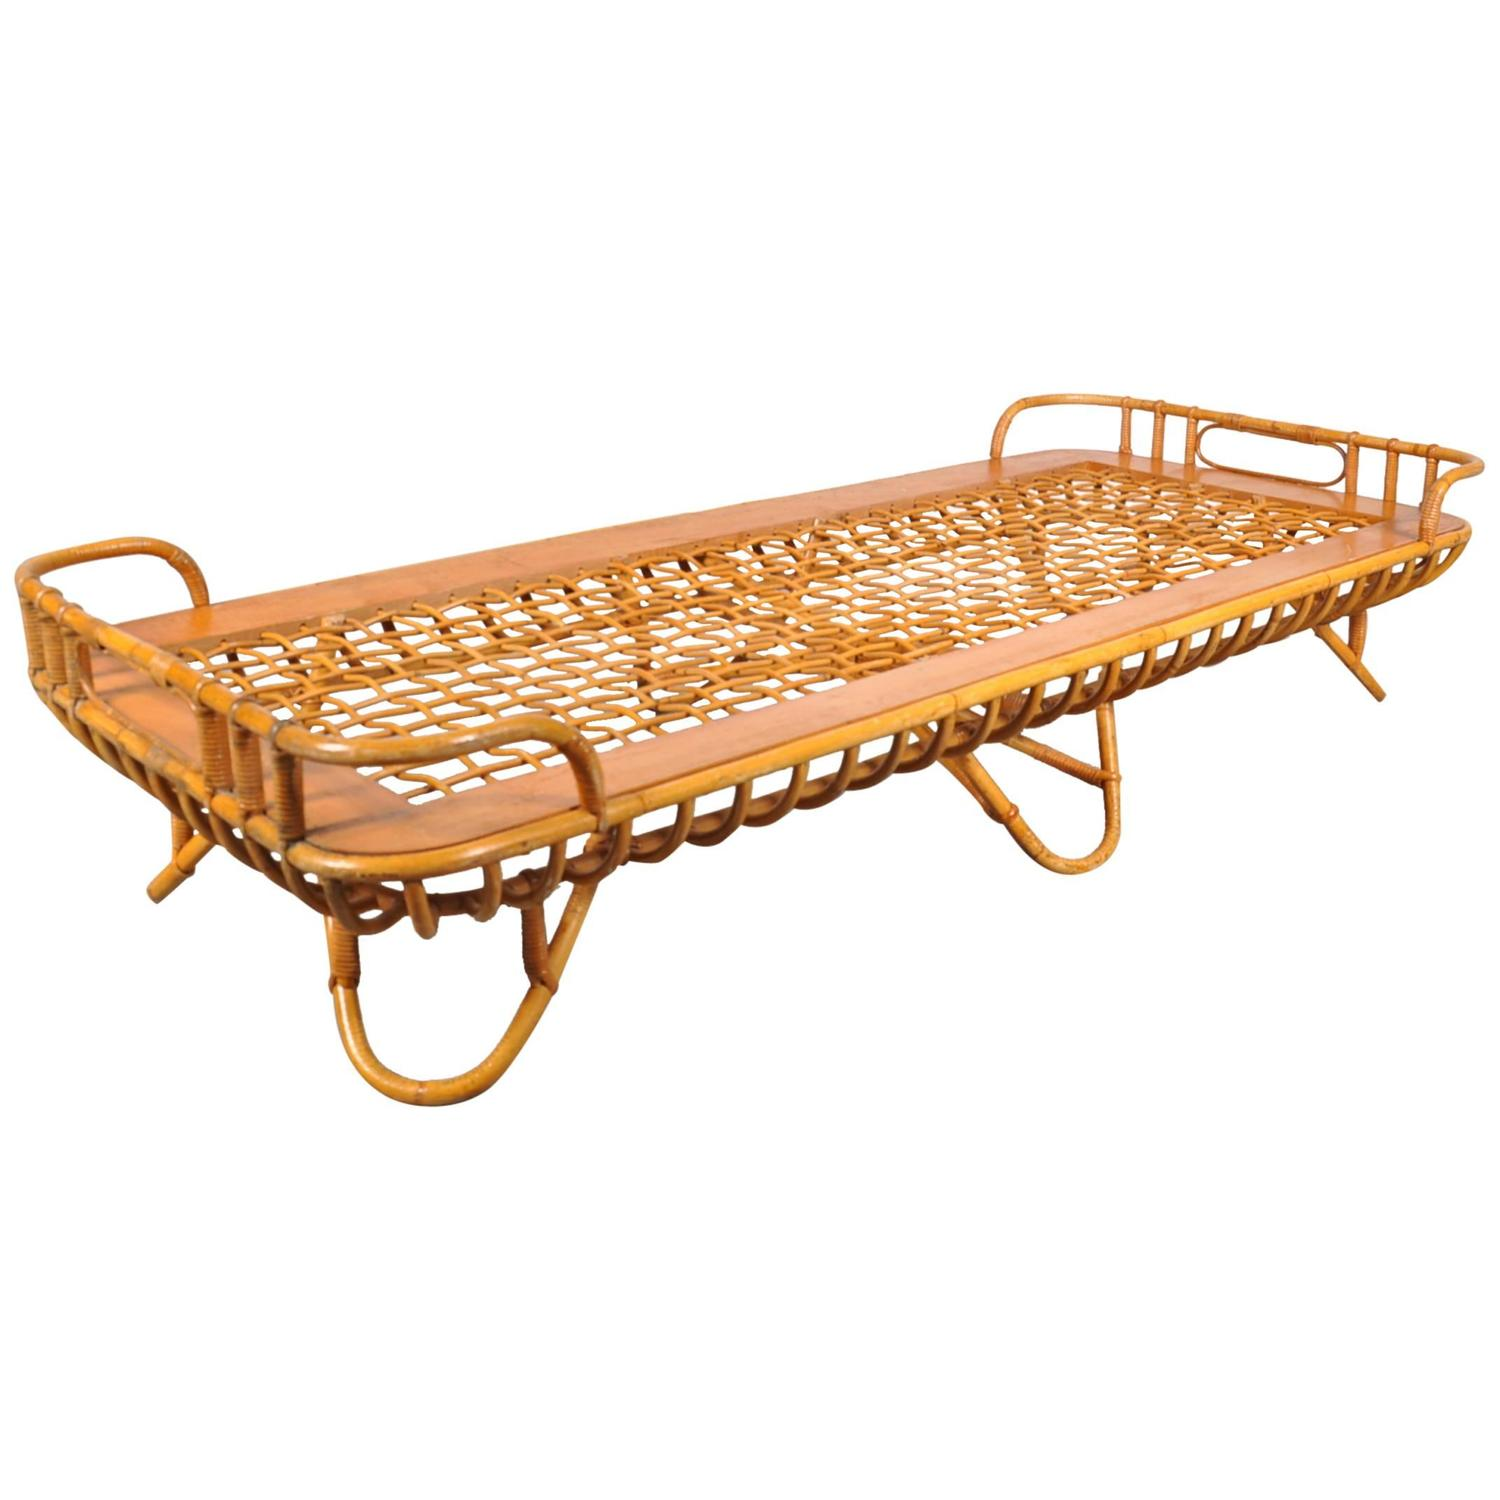 rattan daybed by roh netherlands circa 1950 at 1stdibs. Black Bedroom Furniture Sets. Home Design Ideas